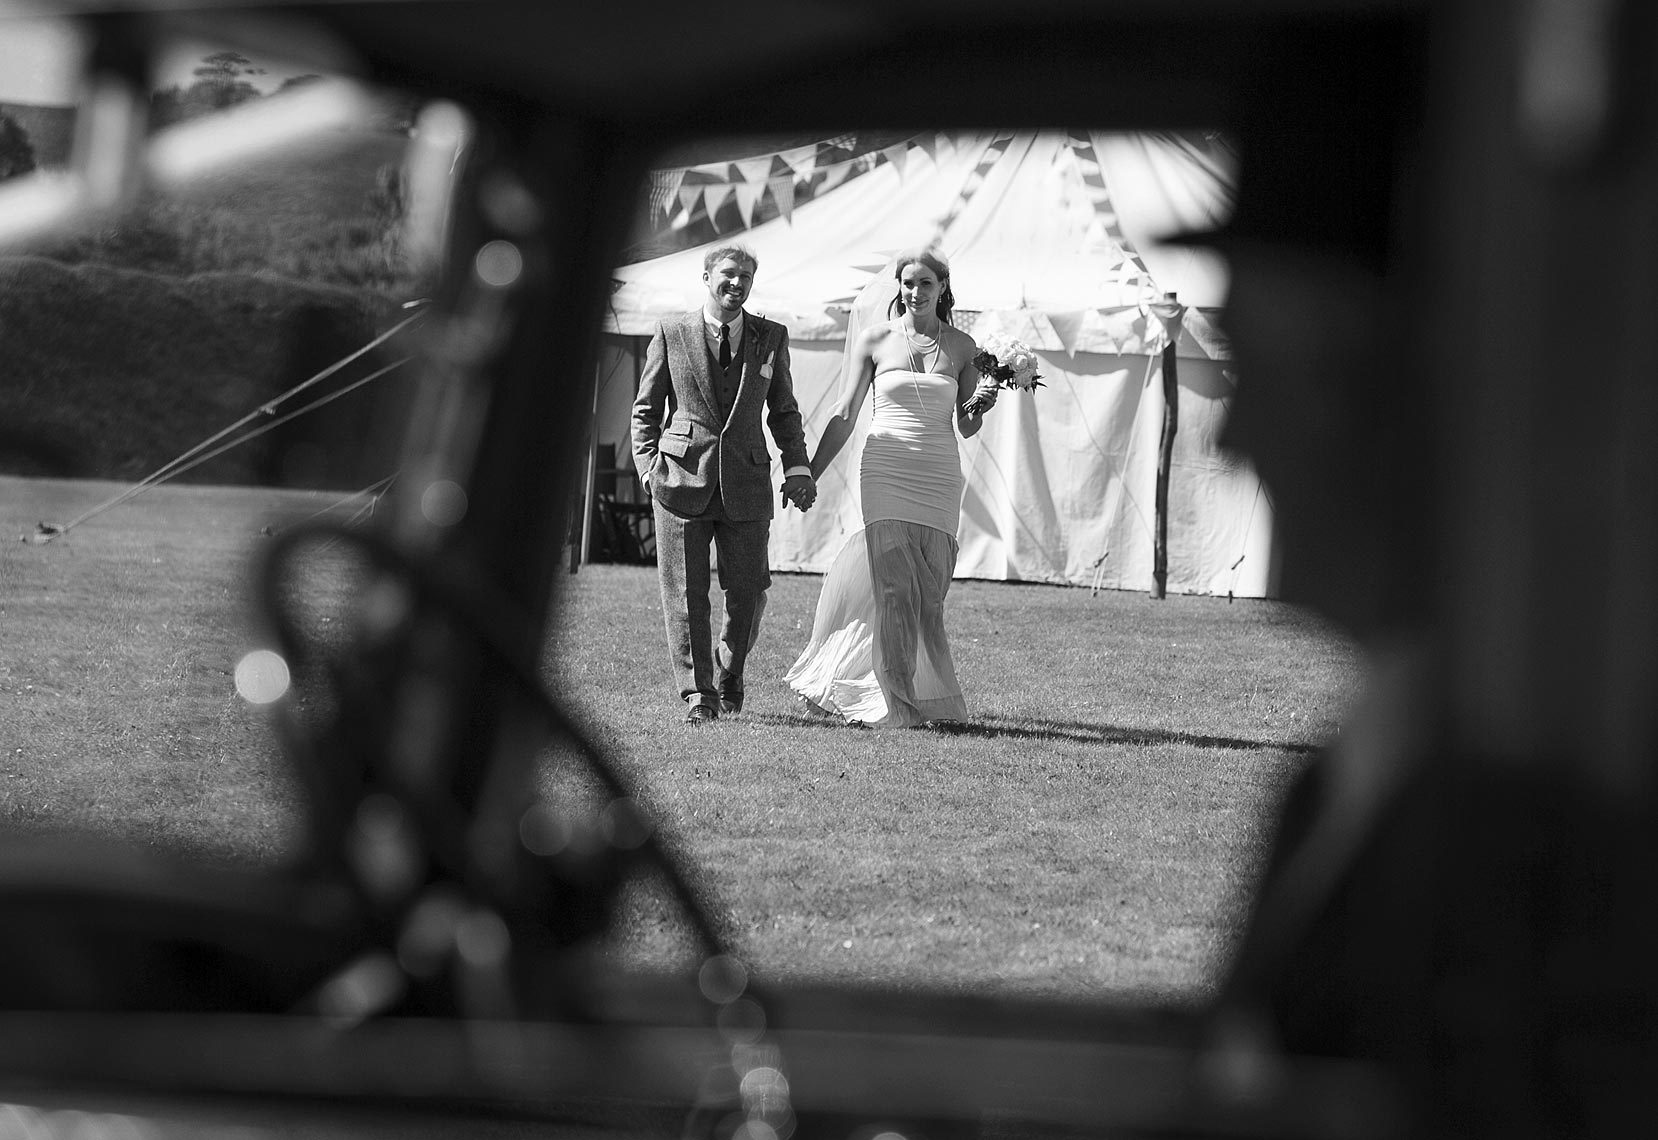 Wedding-photography-Lullingstone-castle.jpg